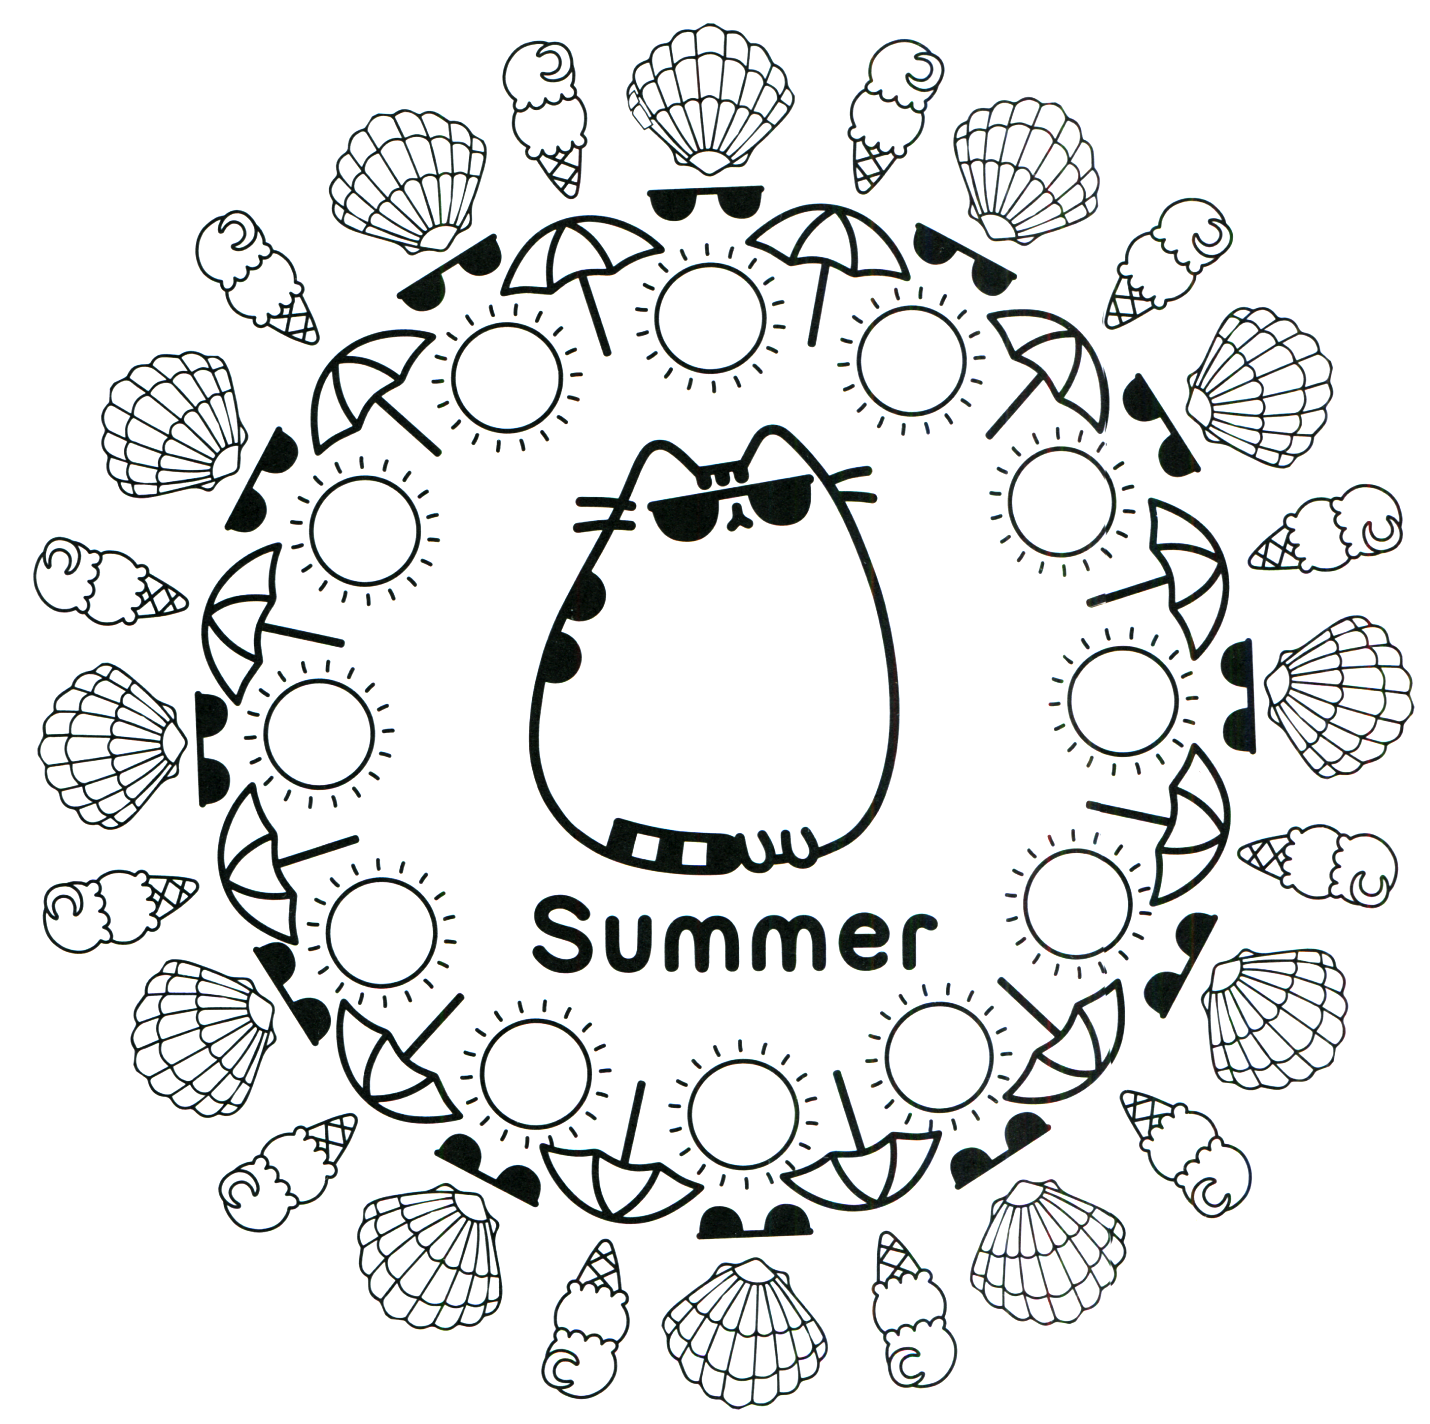 Pusheen Coloring Book Pusheen Pusheen The Cat Pusheen Coloring Pages Summer Coloring Pages Coloring Pages For Teenagers